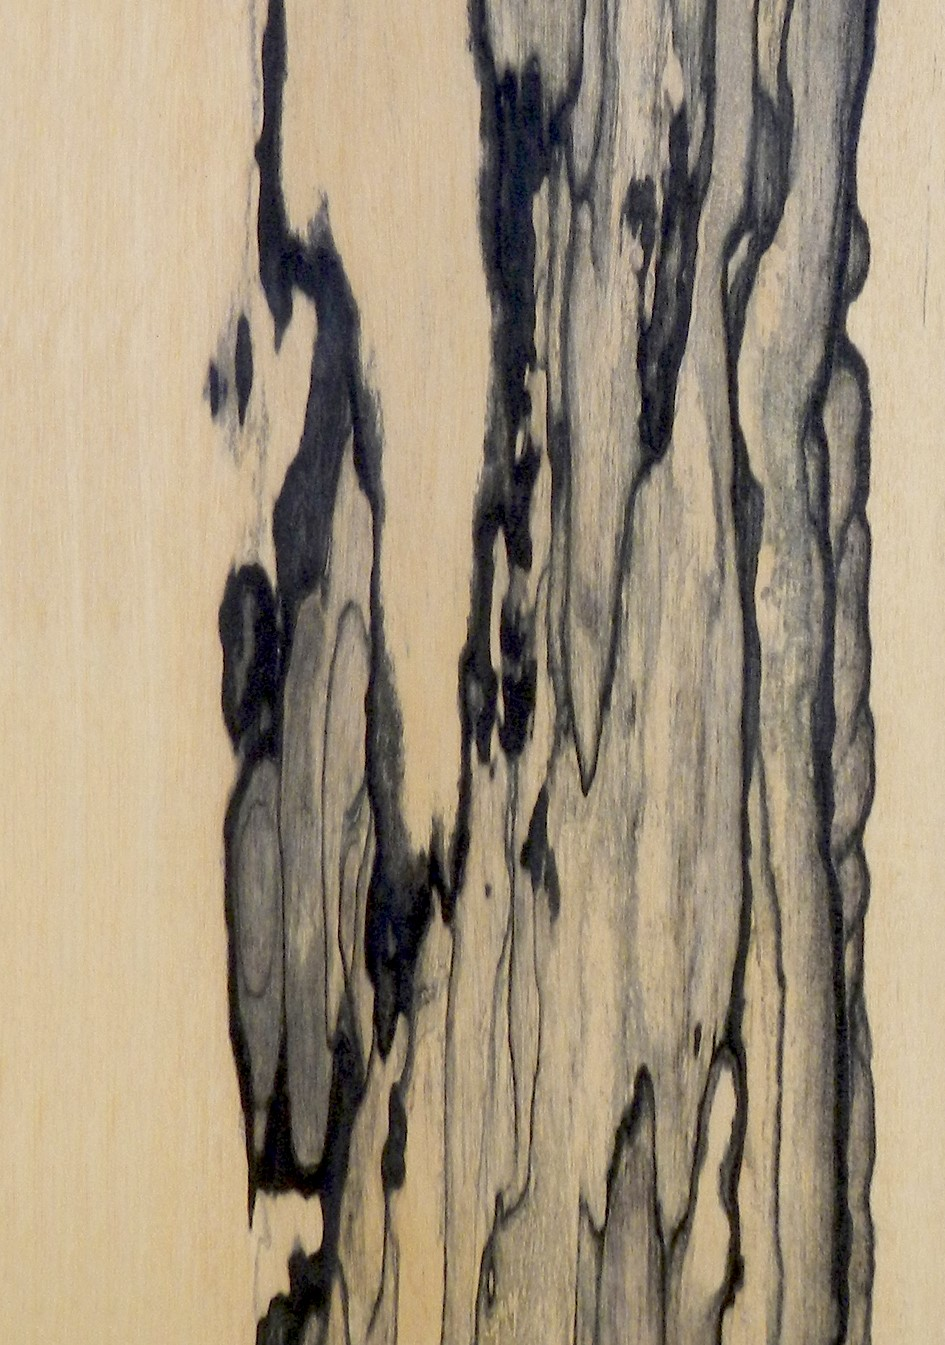 Black and white ebony veneer